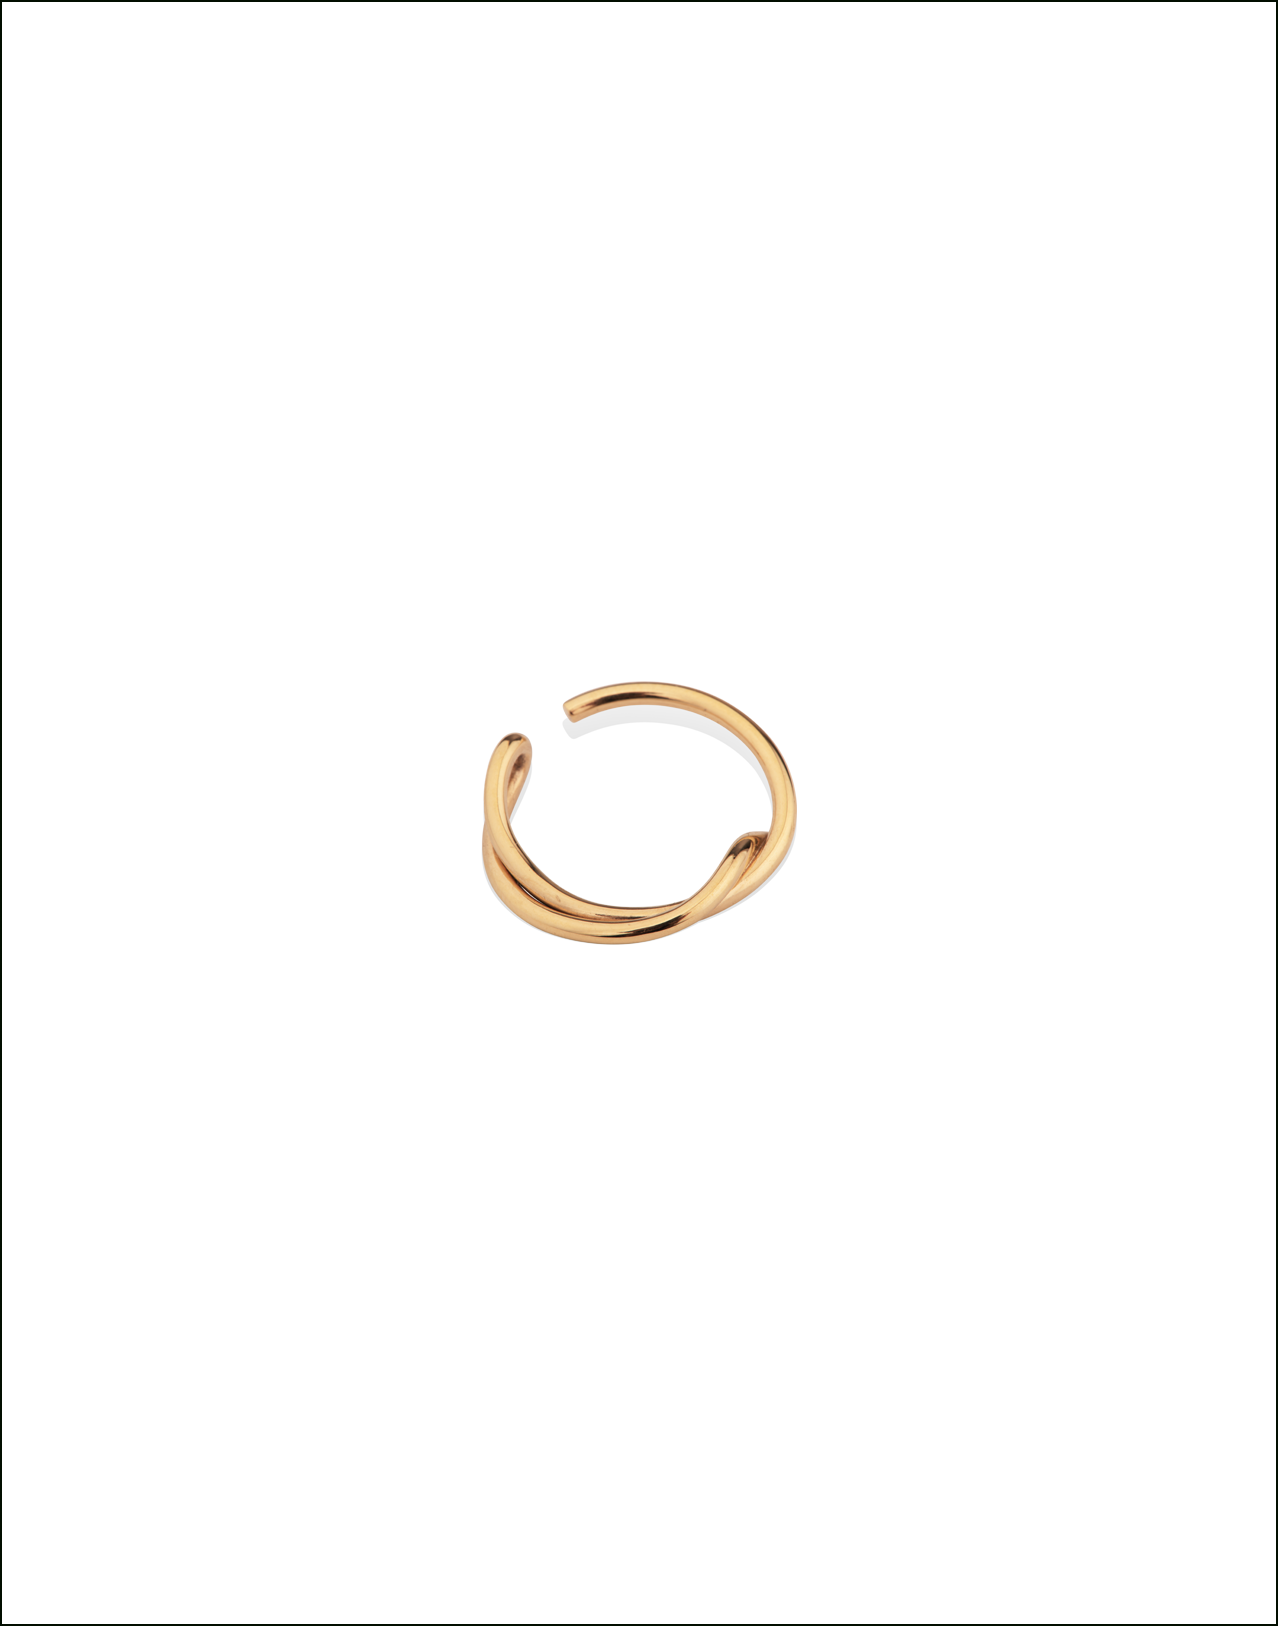 Completedworks-Ear-Cuff-Gold-Vermeil-Statue-of-a-Couple-3-1.png